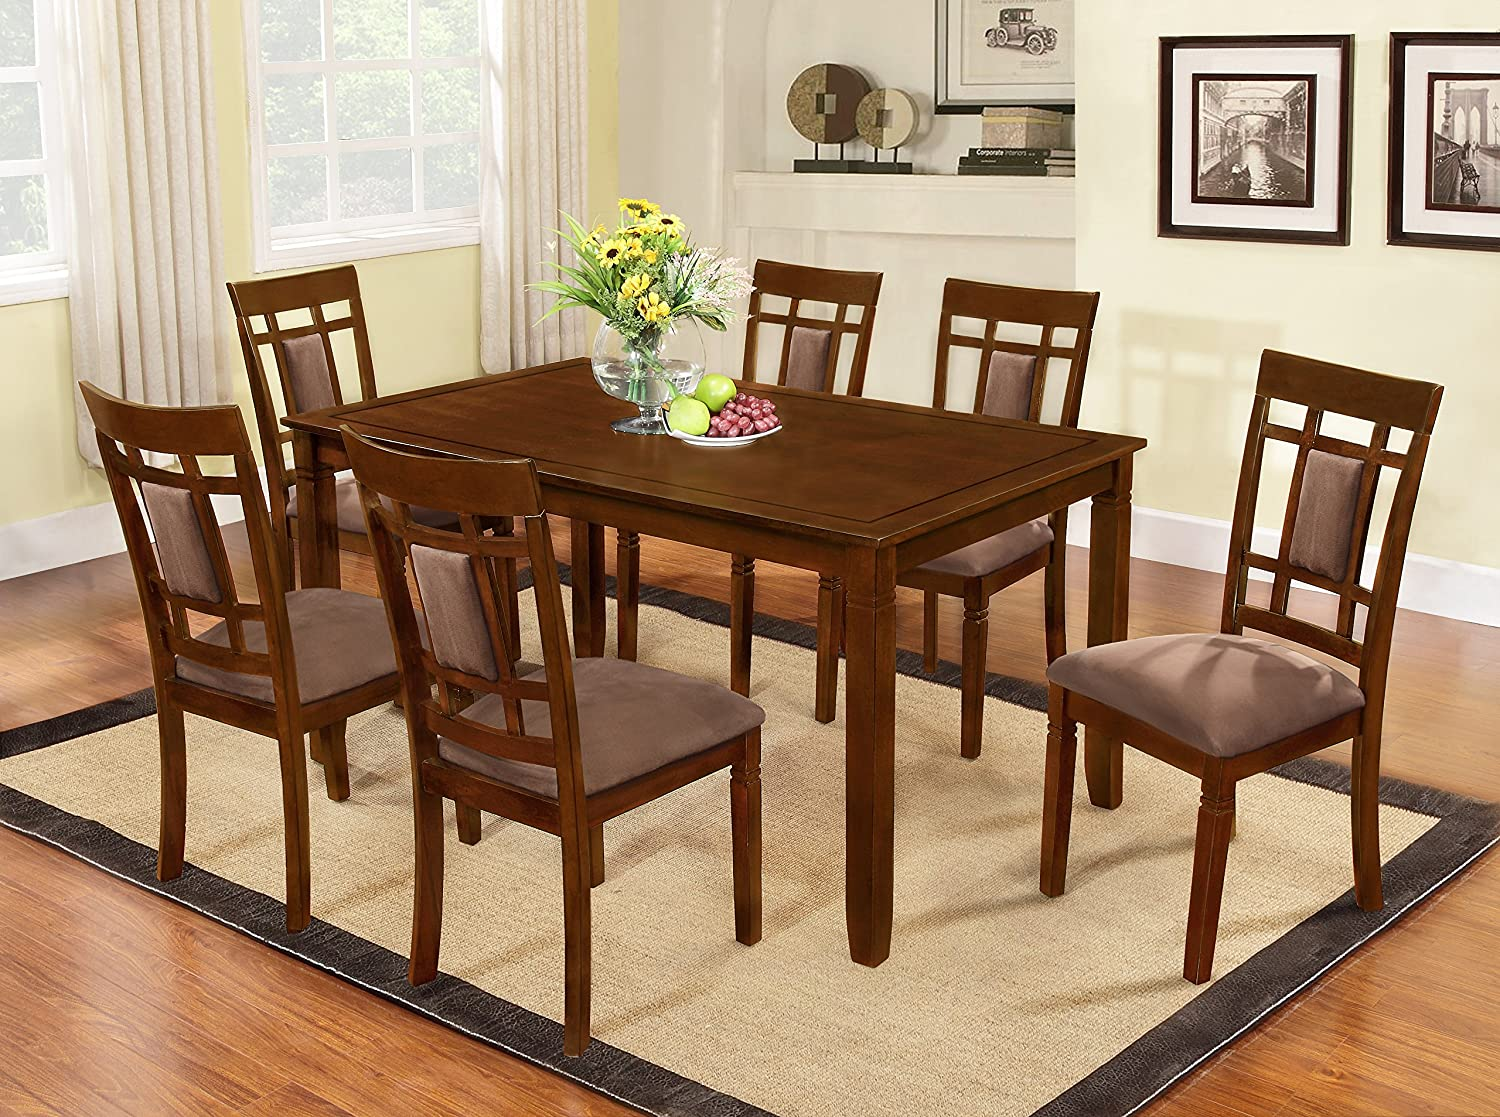 Gentil Amazon.com   The Room Style 7 Piece Cherry Finish Solid Wood Dining Table  Set   Table U0026 Chair Sets